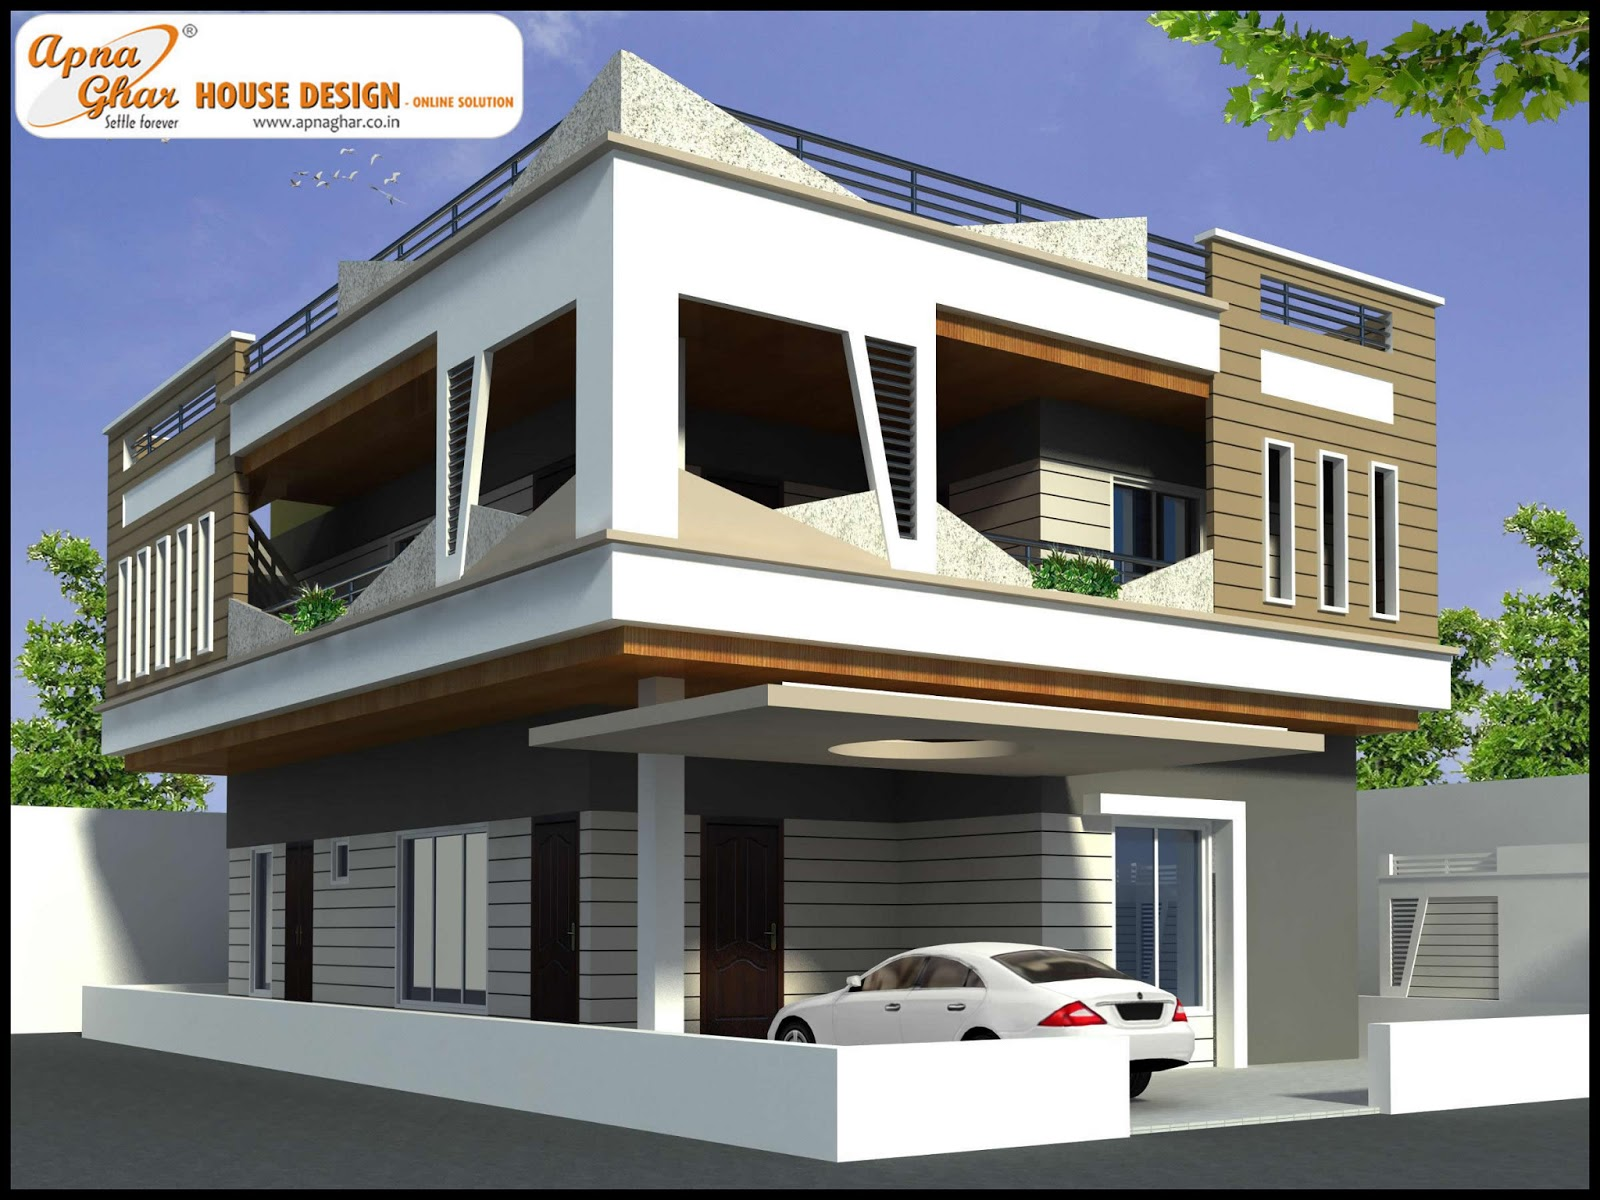 4 bedrooms duplex house design in 216m2 12m x 18m fresh home ideas - Room house design ...